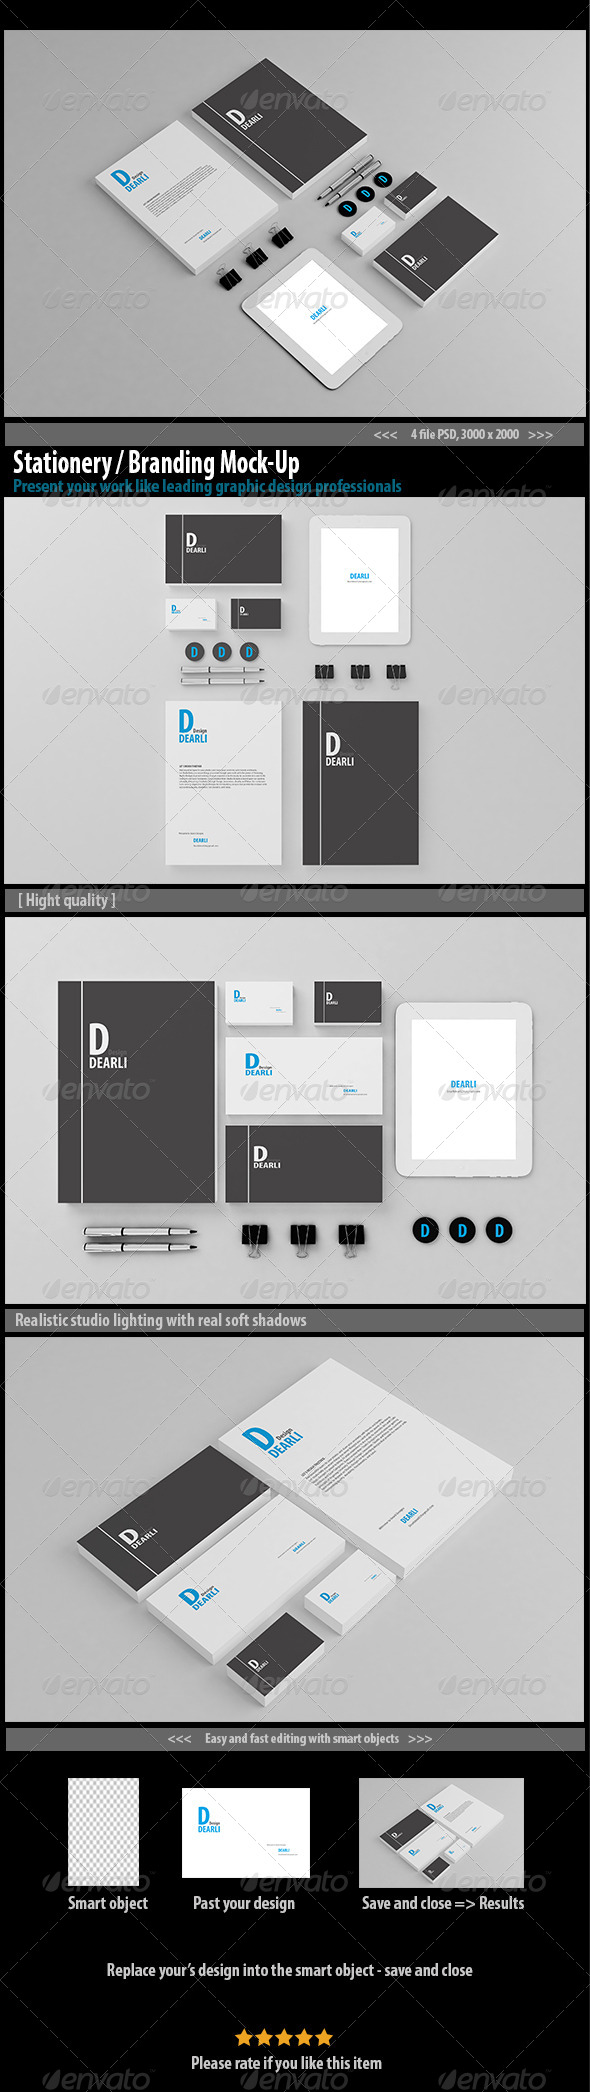 GraphicRiver Stationery Branding Mock-Up 7823689